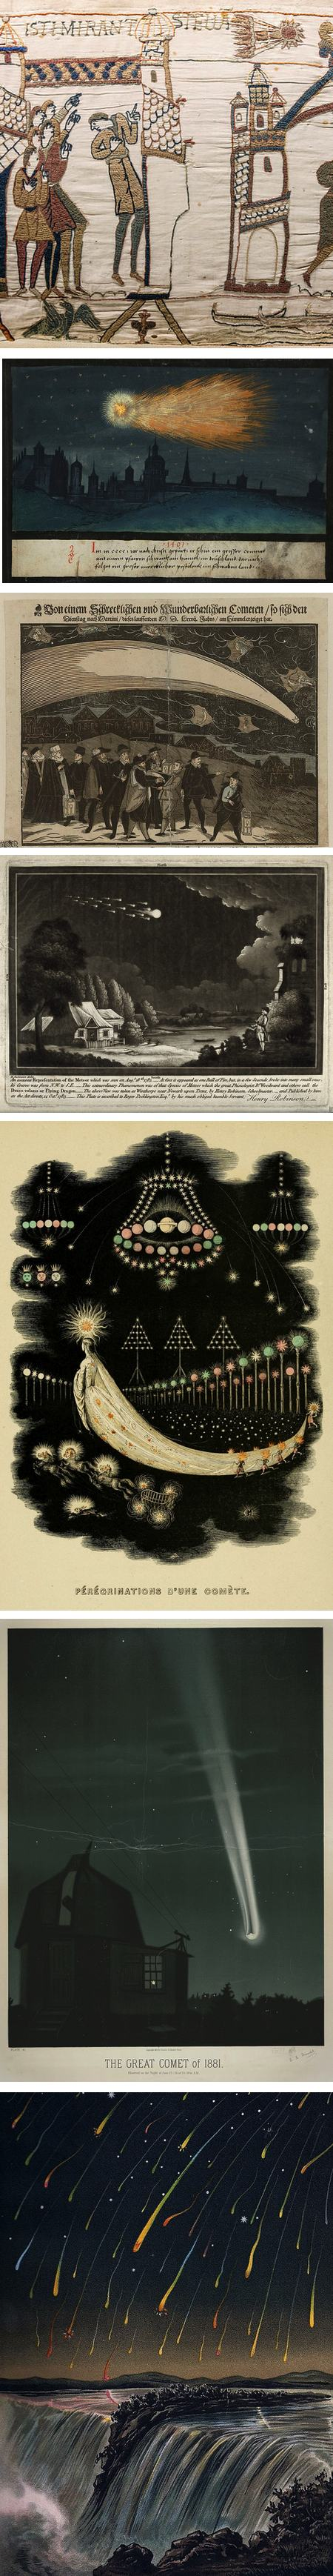 Flowers of the Sky: historic depictions of comets and meteors